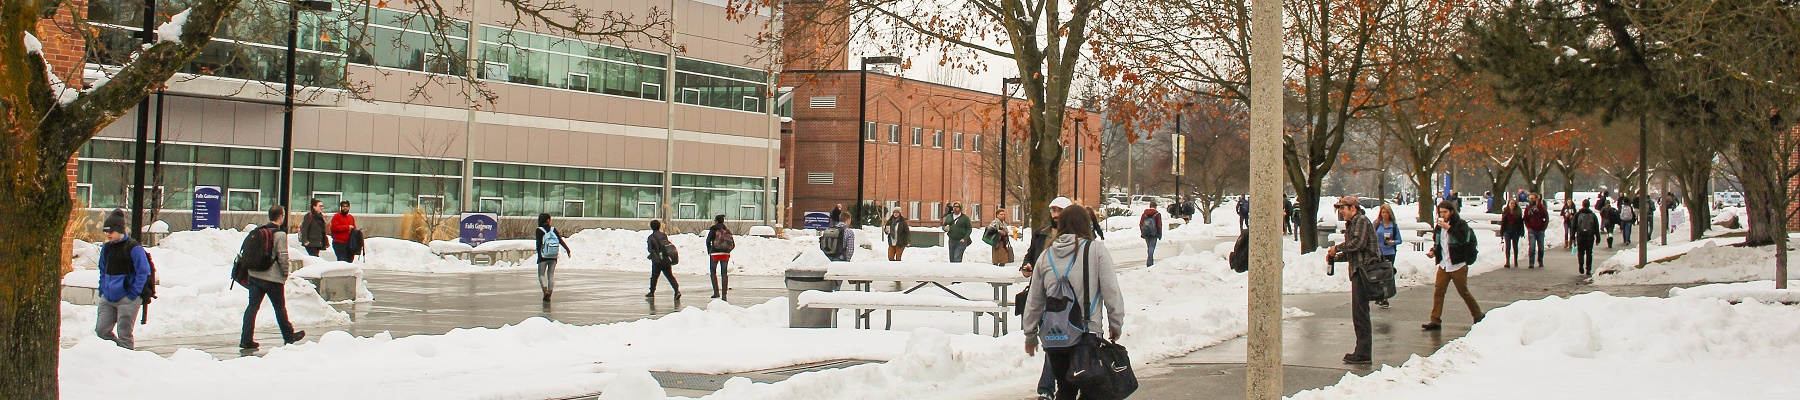 Winter scene on SFCC campus.